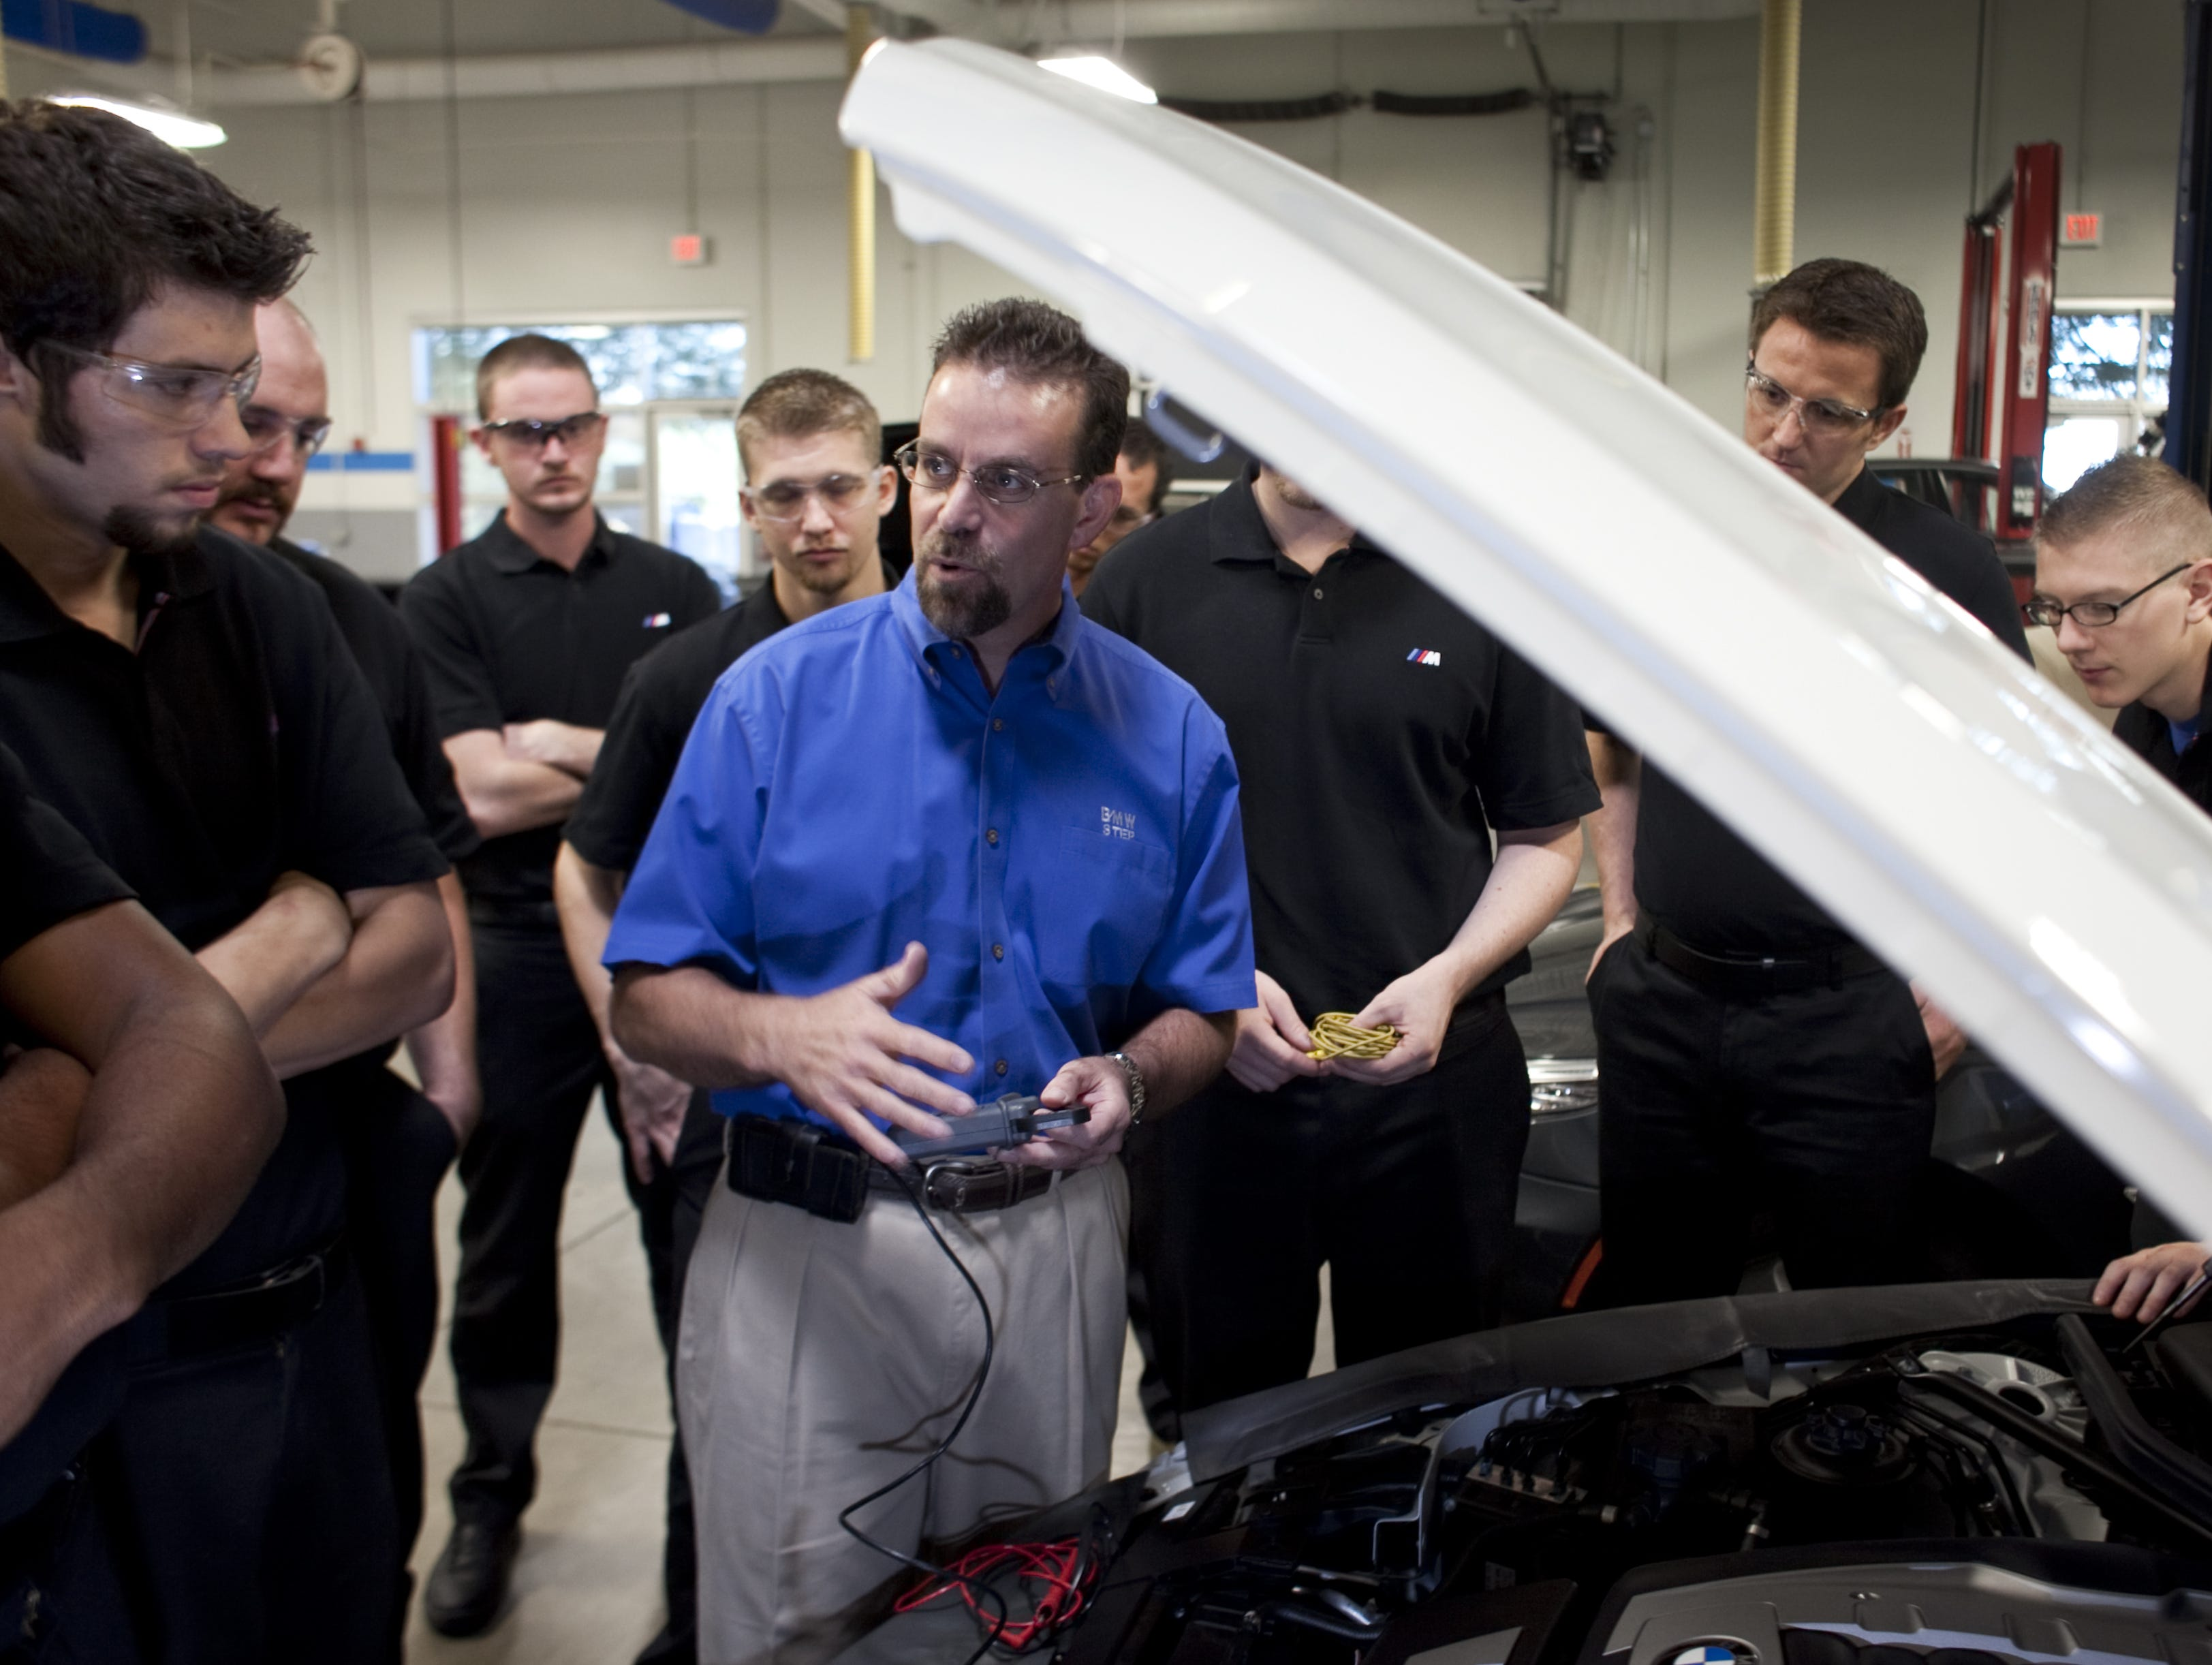 Tom Varrone teaches a BMW class at the Universal Technical Institute, 10695 W. Pierce St. in Avondale.